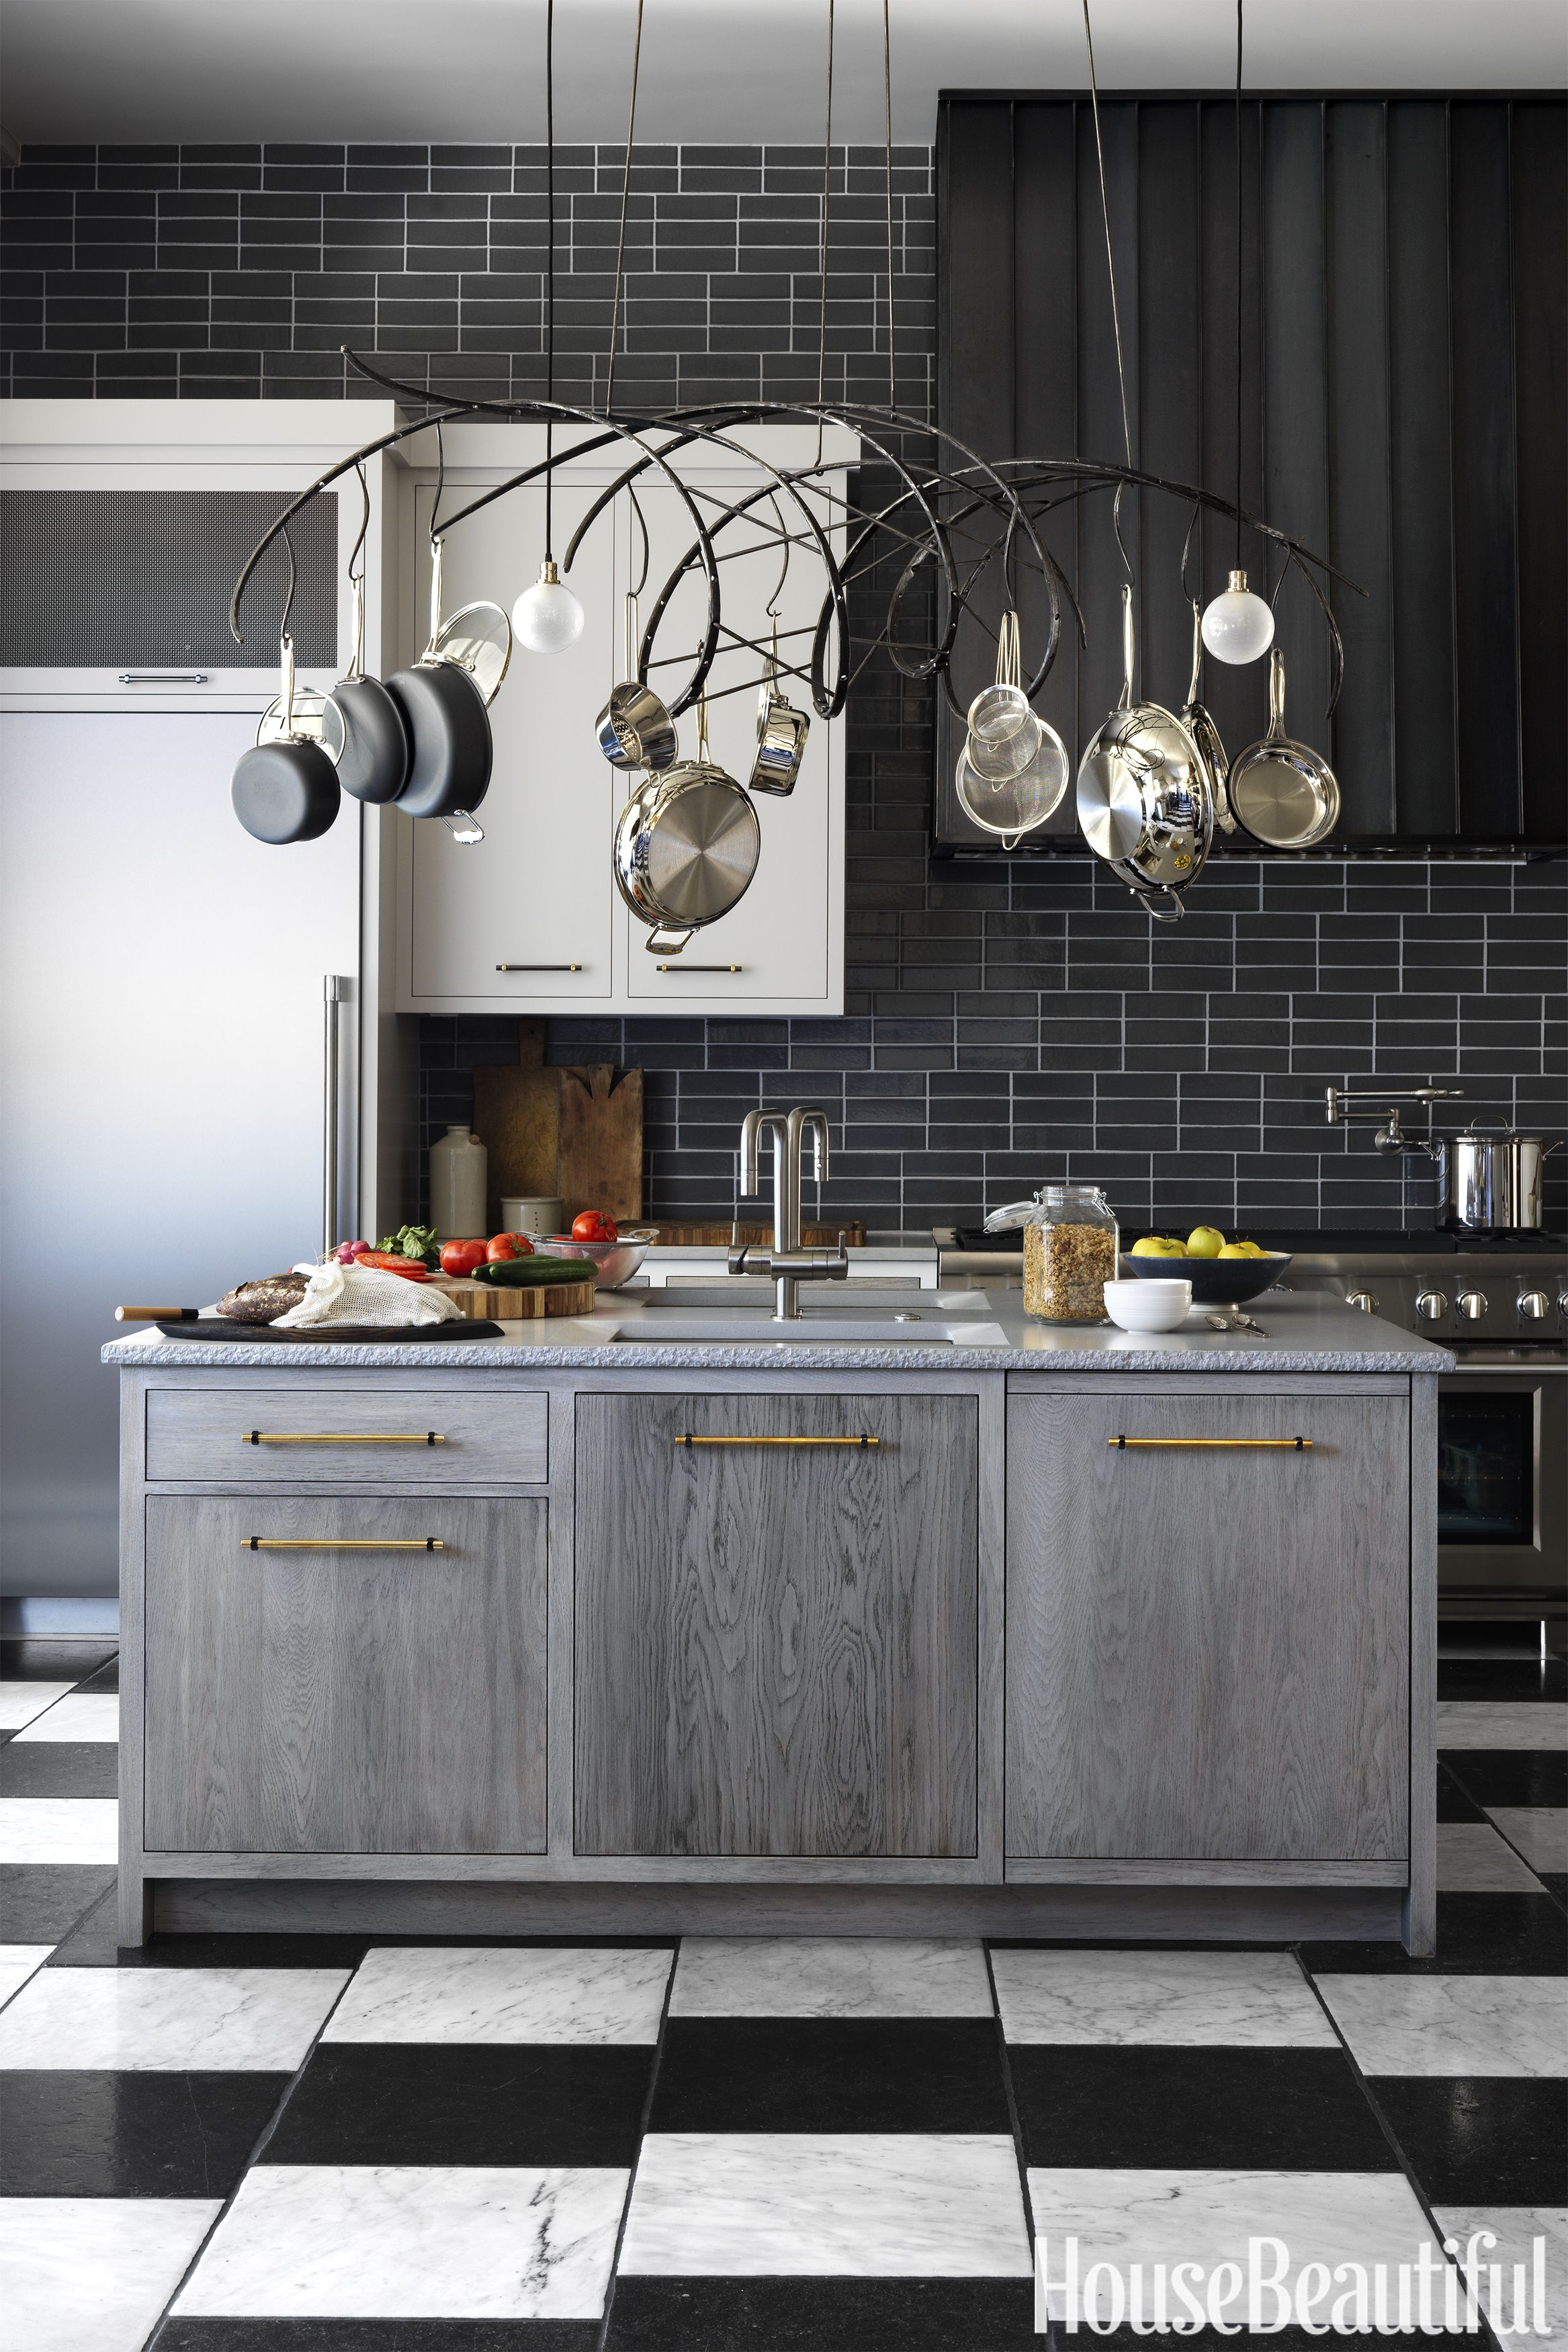 jon de la cruz kitchen of the year kitchen island